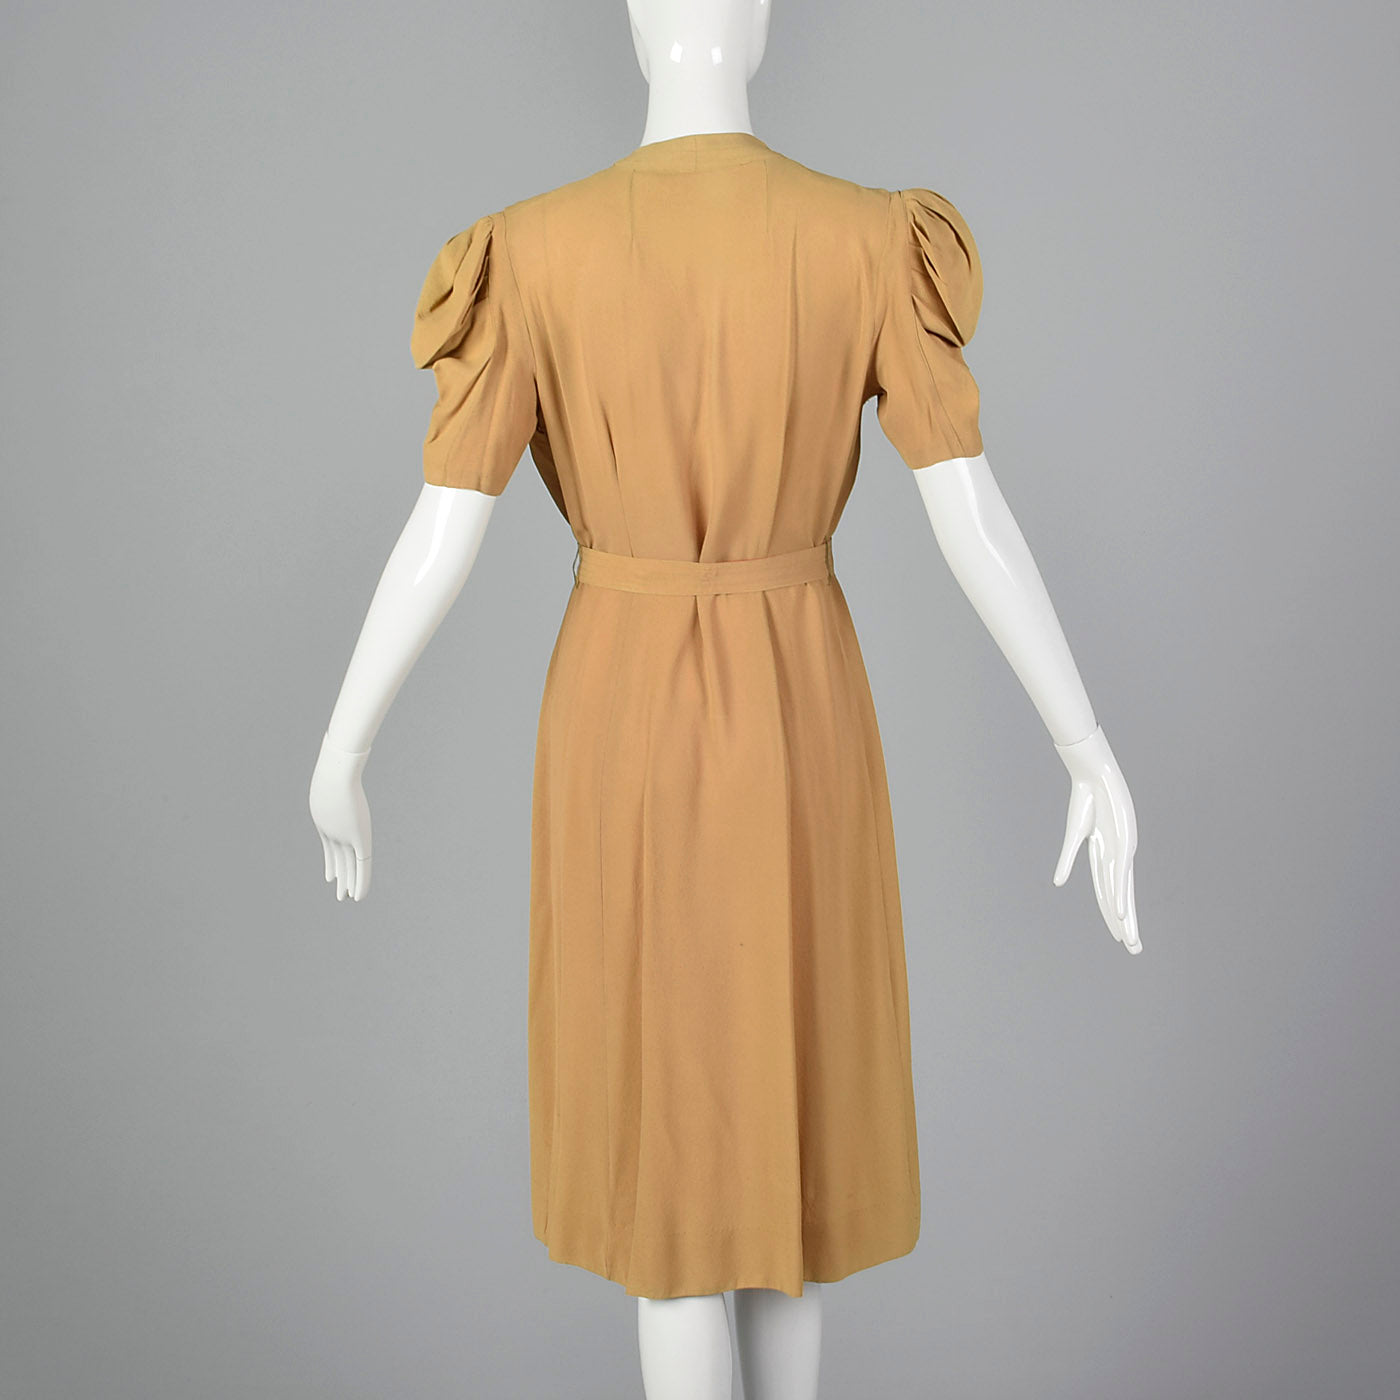 1940s Tan Rayon Crepe Dress with Full Flower Corsage